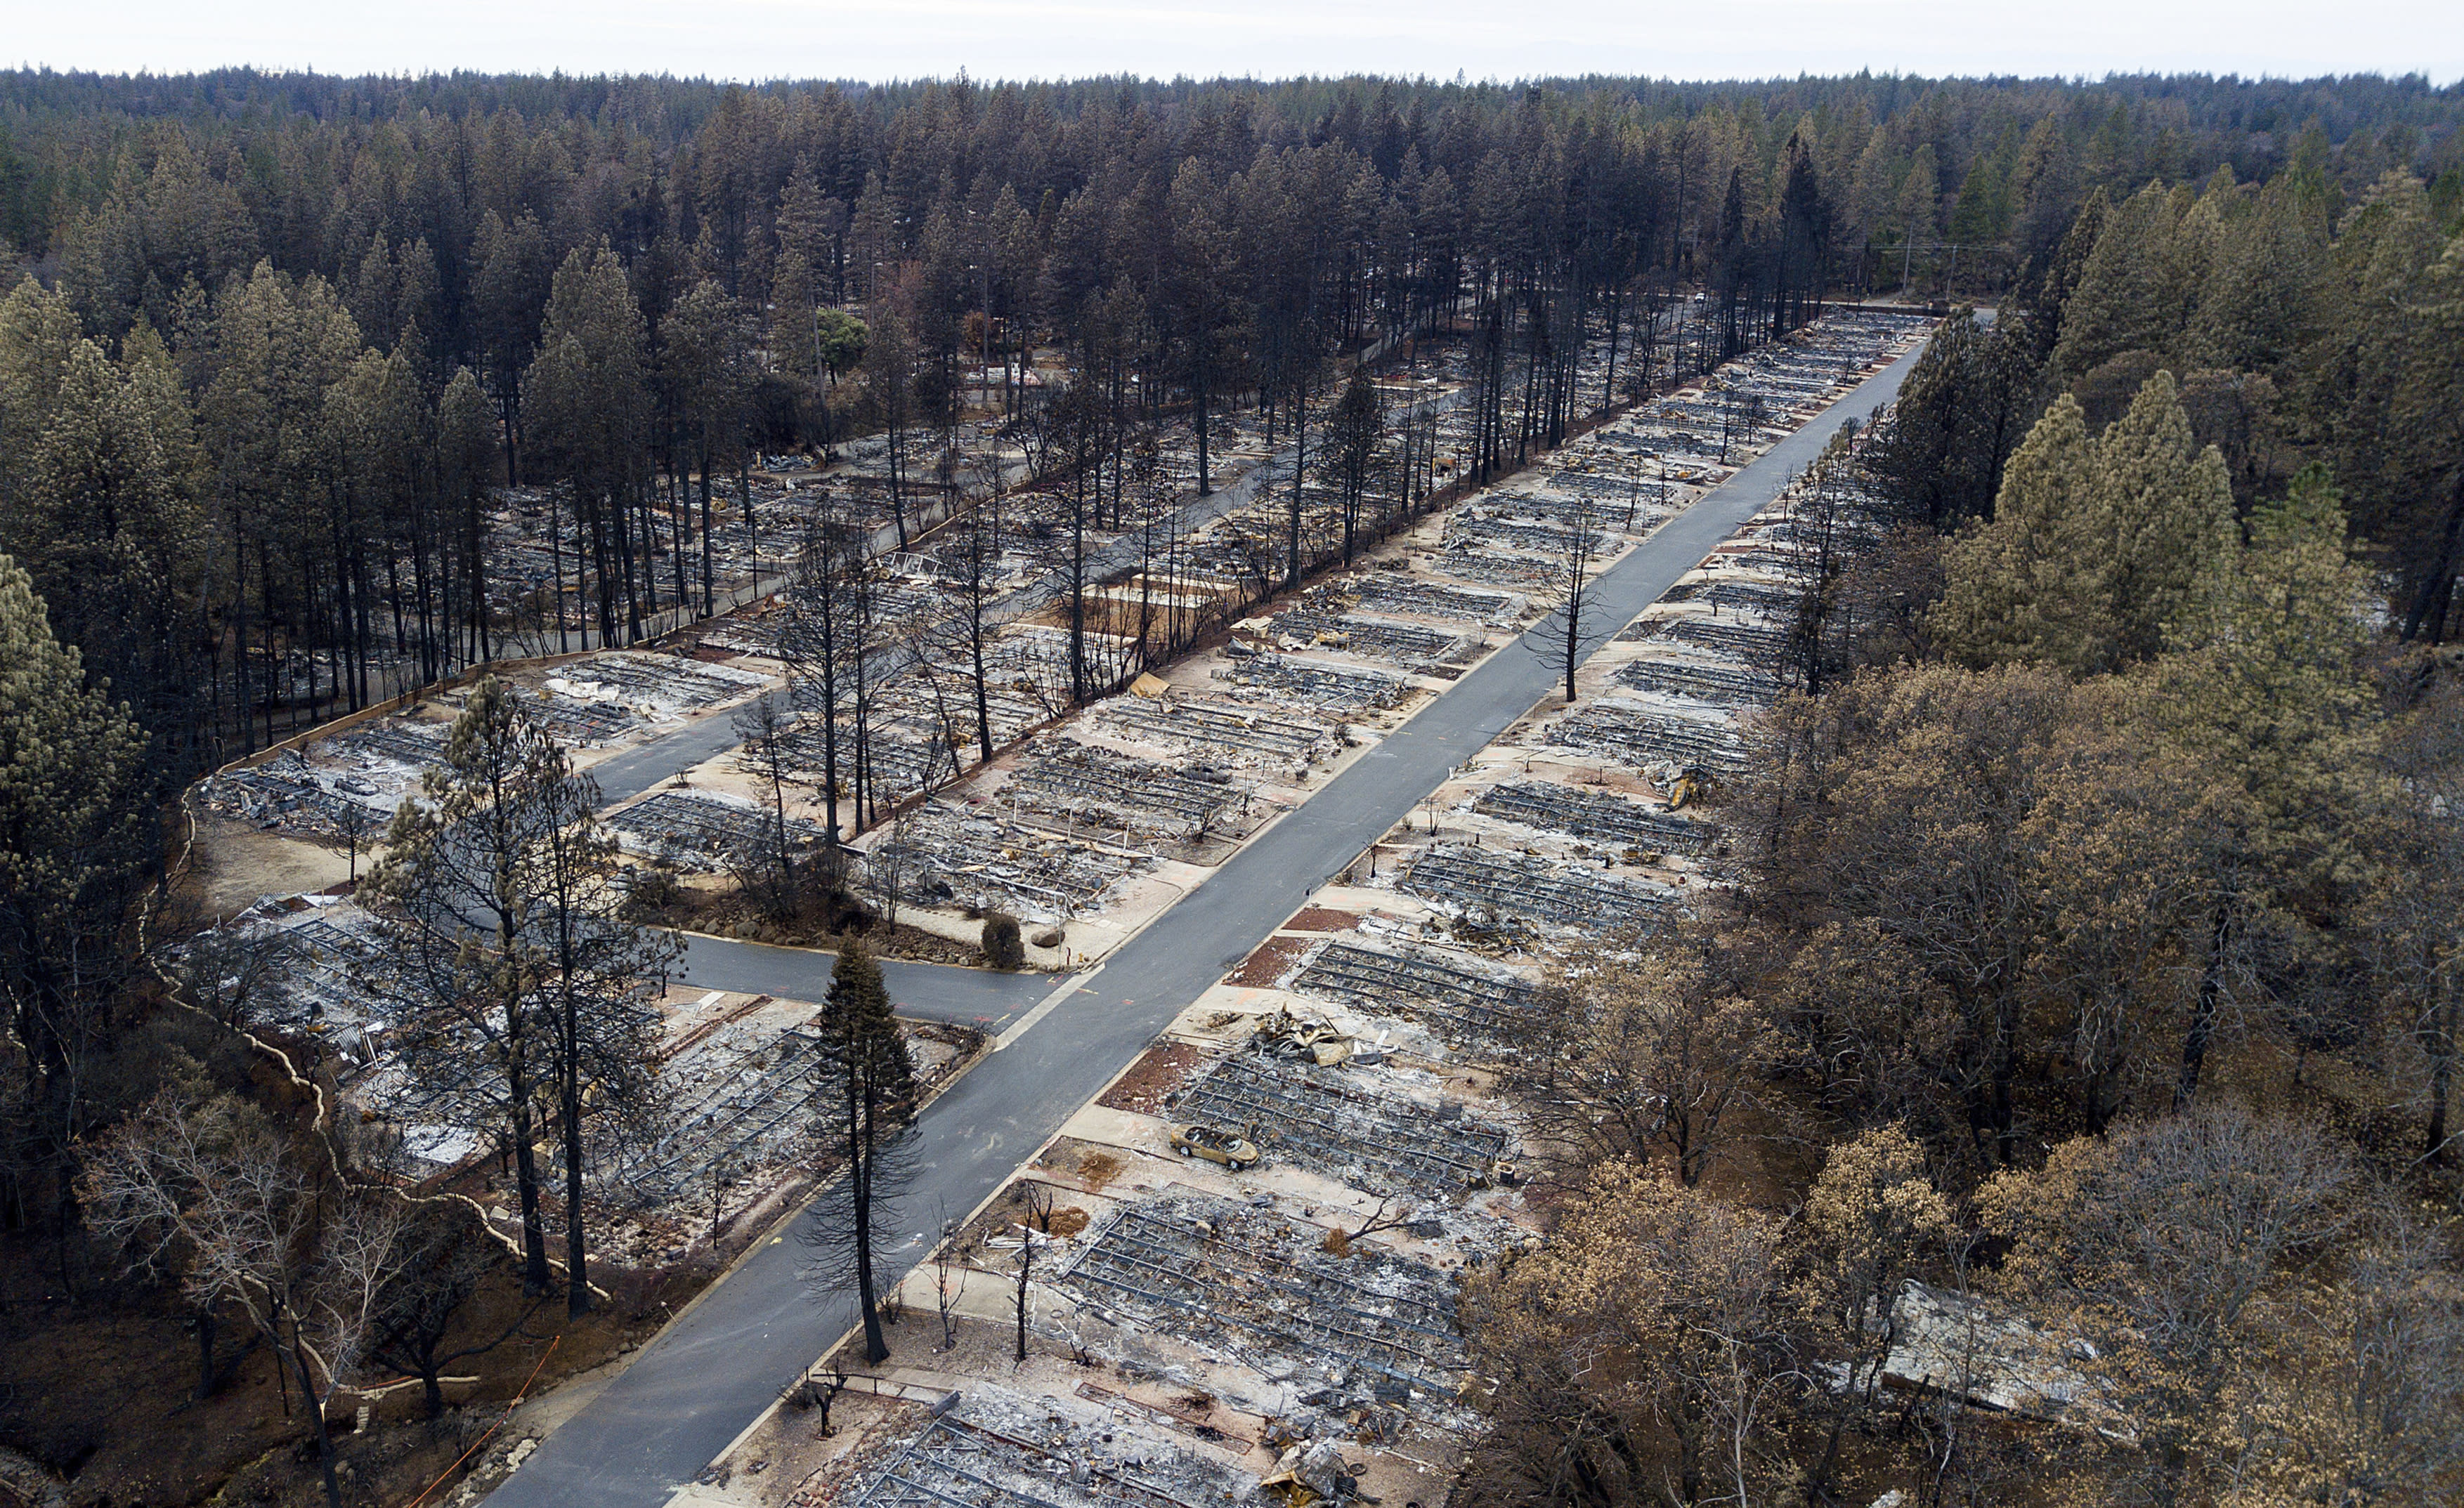 FILE - In this Dec. 3, 2018, file photo, homes leveled by the Camp Fire line the Ridgewood Mobile Home Park retirement community in Paradise, Calif. Attorneys say as many as 100,000 Californians are eligible to receive payments for the damages they've suffered from a series of devastating wildfires over the last several years, but tens of thousands of them have not. They face a Monday, Oct. 21, 2019, deadline to file claims against Pacific Gas & Electric, the utility blamed for many of the fires. (AP Photo/Noah Berger, File)